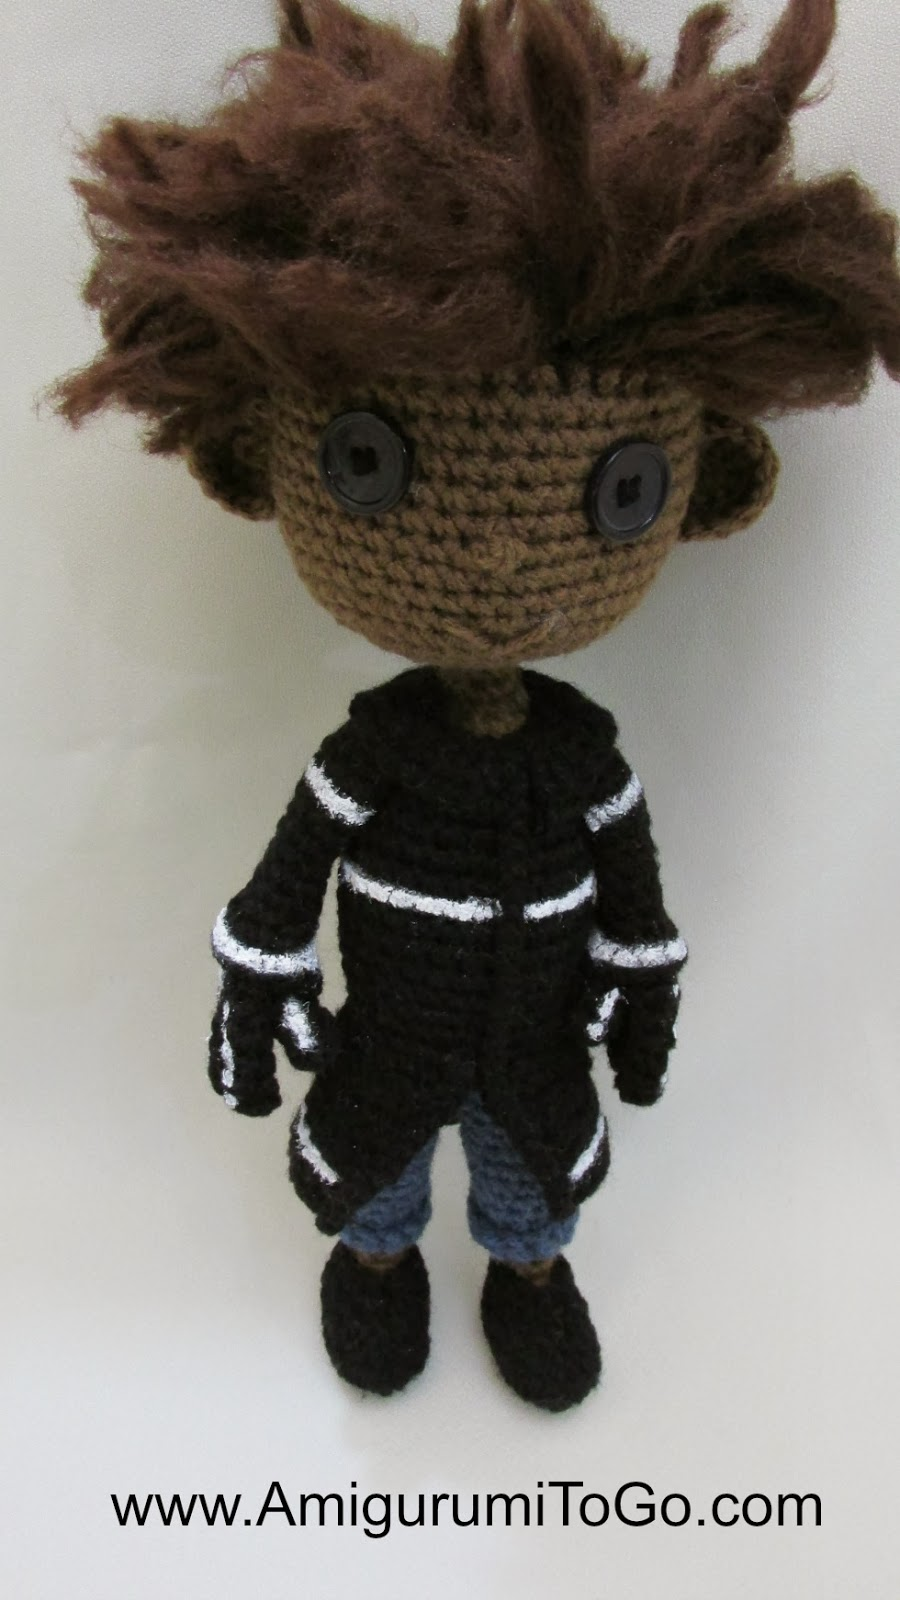 Amigurumi Wybie Doll With Video Tutorial ~ Amigurumi To Go